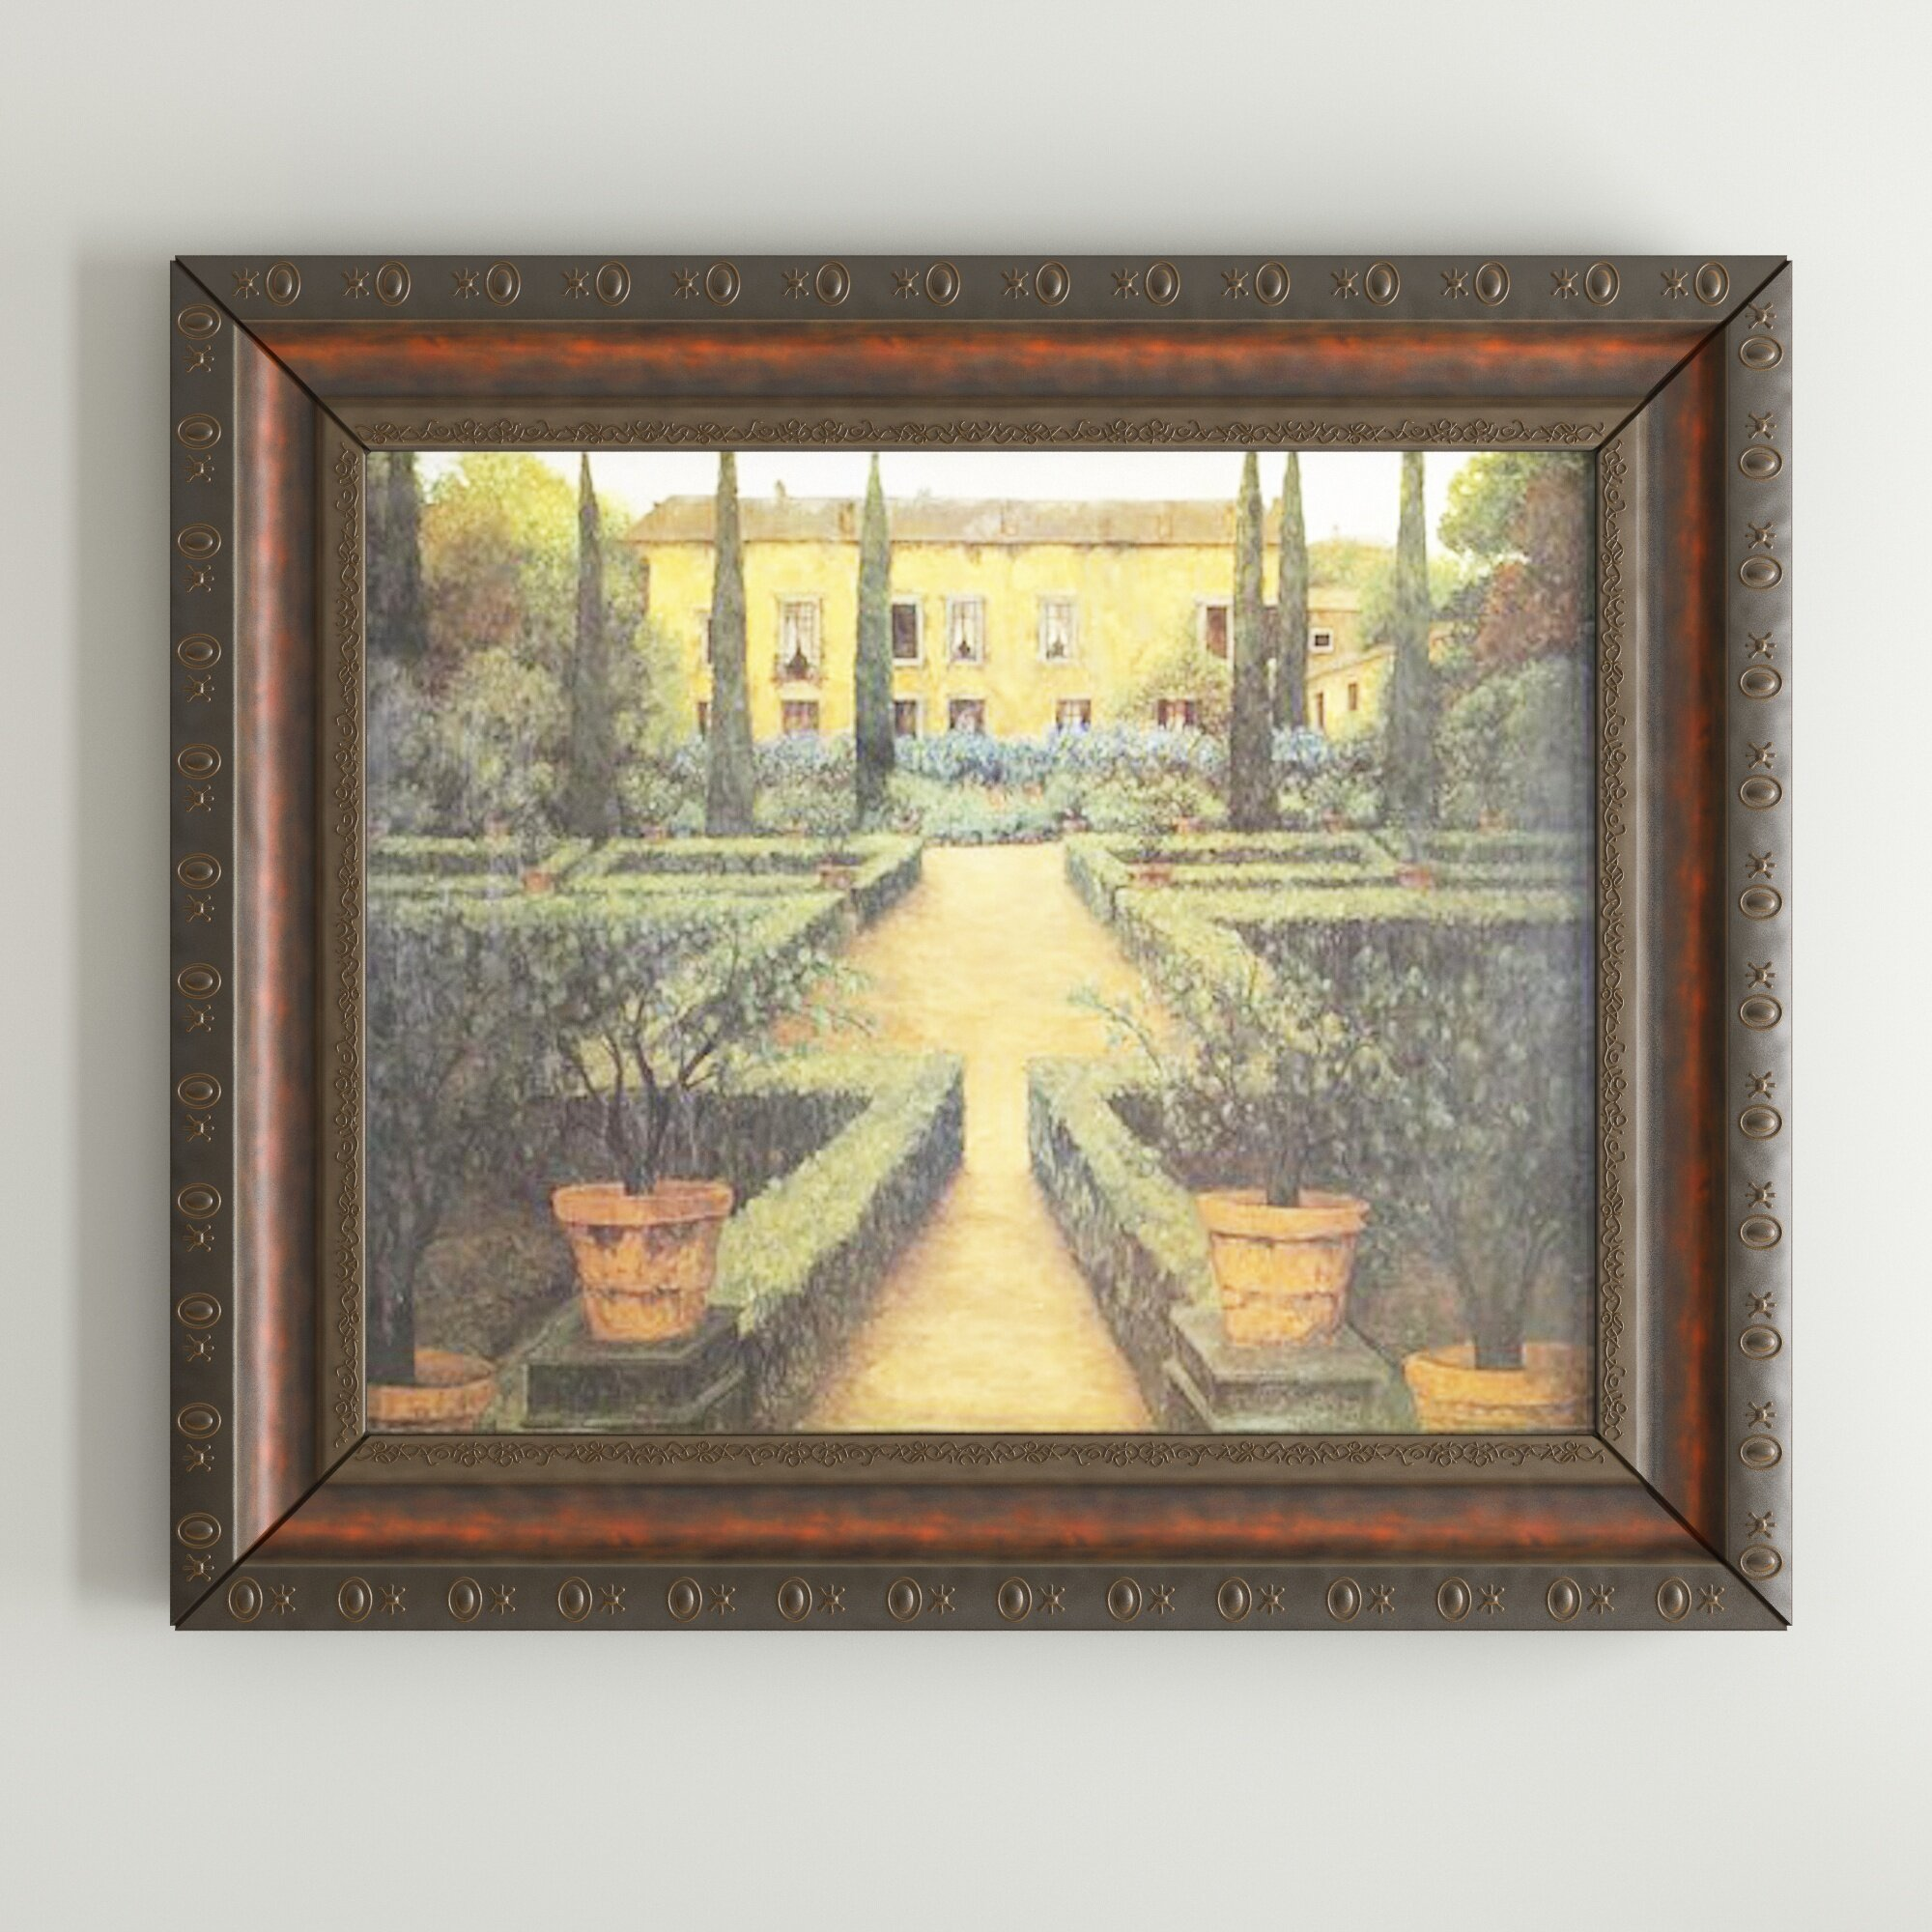 Darby Home Co \'Garden Manor\' Framed Painting Print & Reviews | Wayfair